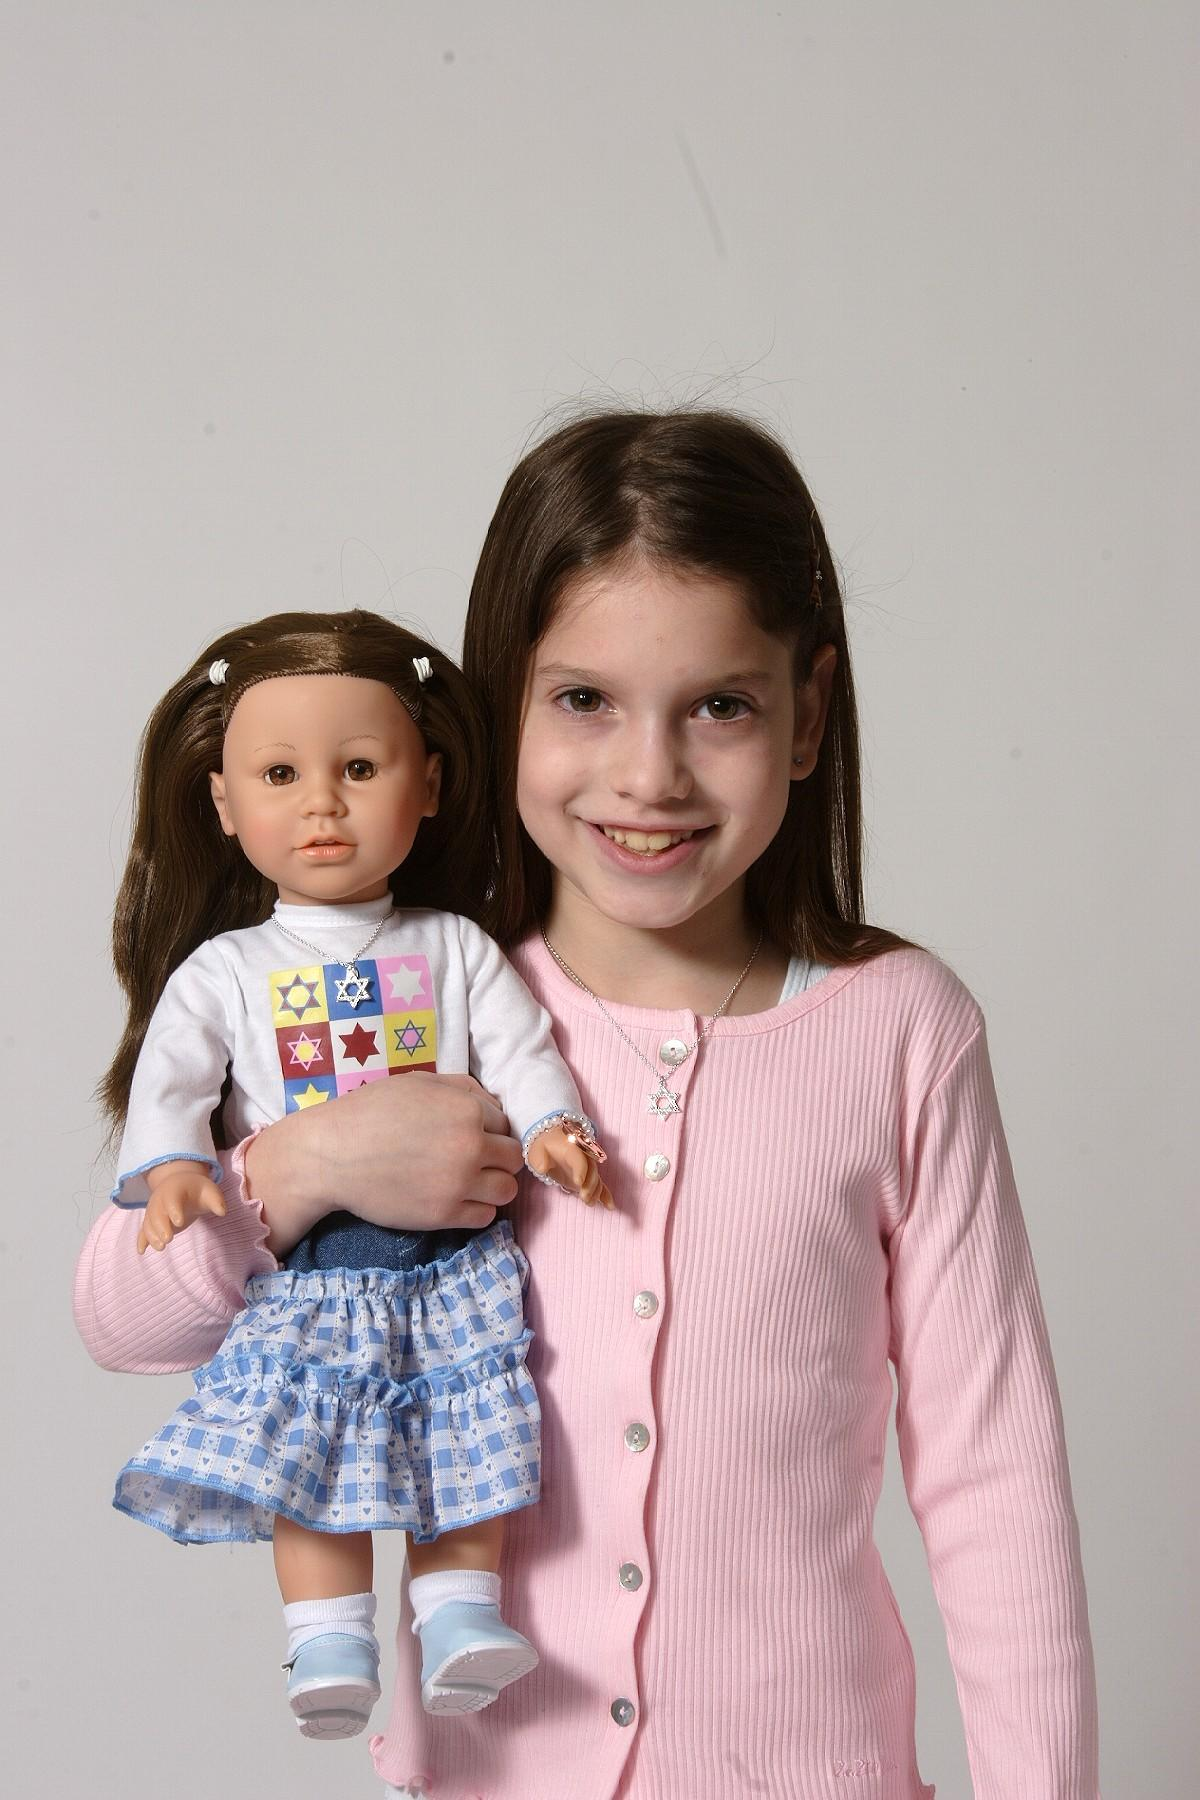 A Girl Holding a Gali Girls Doll